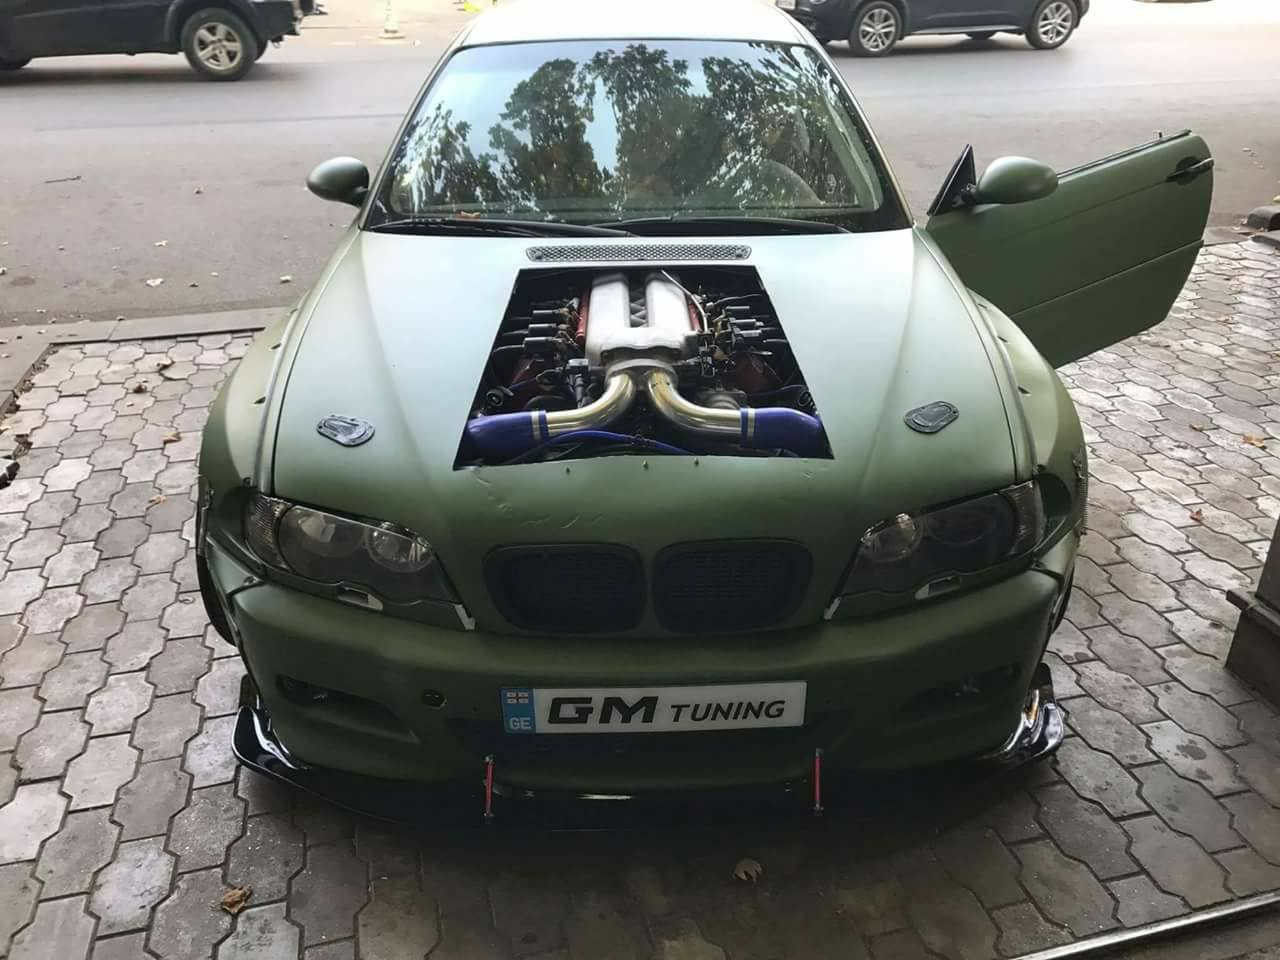 bmw m3 e46 with a viper v10 engine swap depot. Black Bedroom Furniture Sets. Home Design Ideas